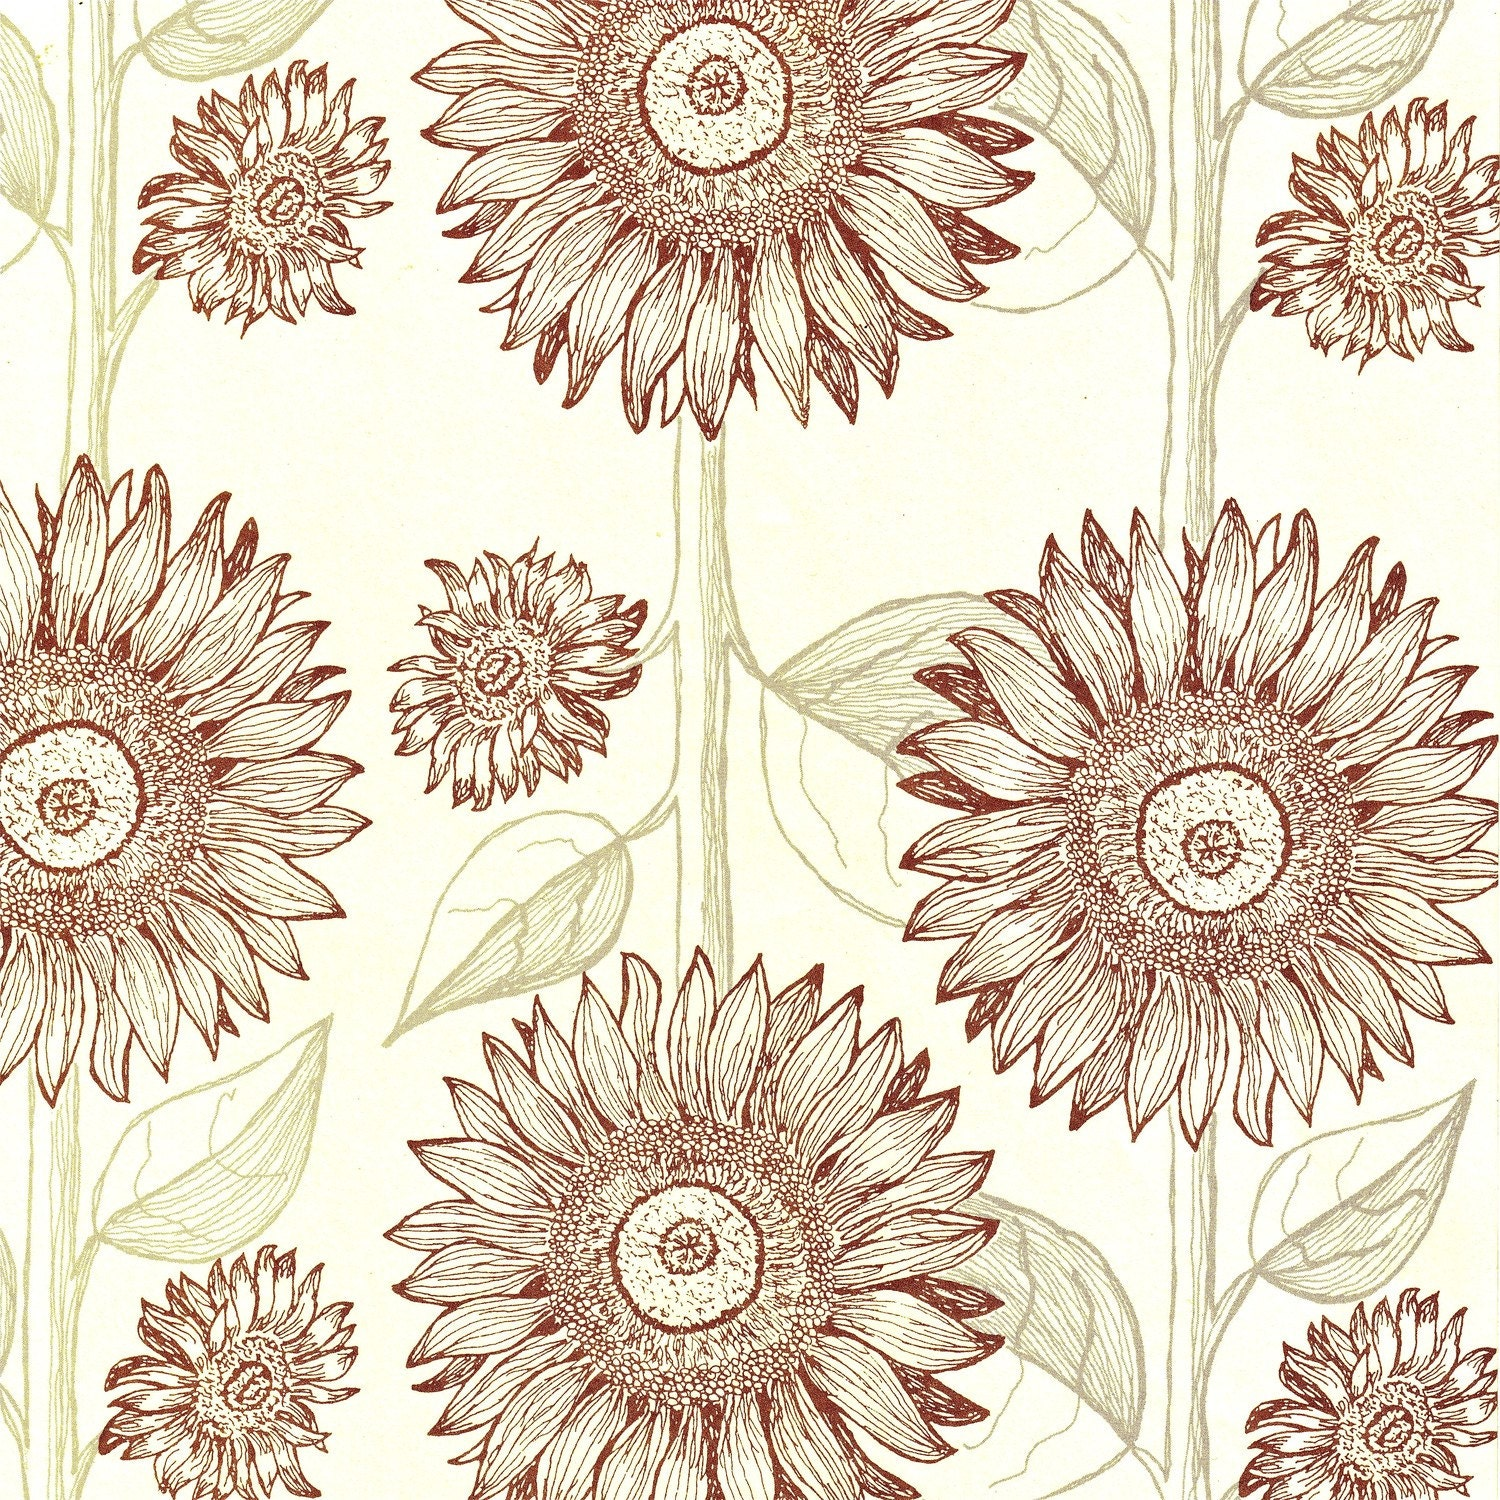 12x12 Decorative Papers-Sunflowers Design